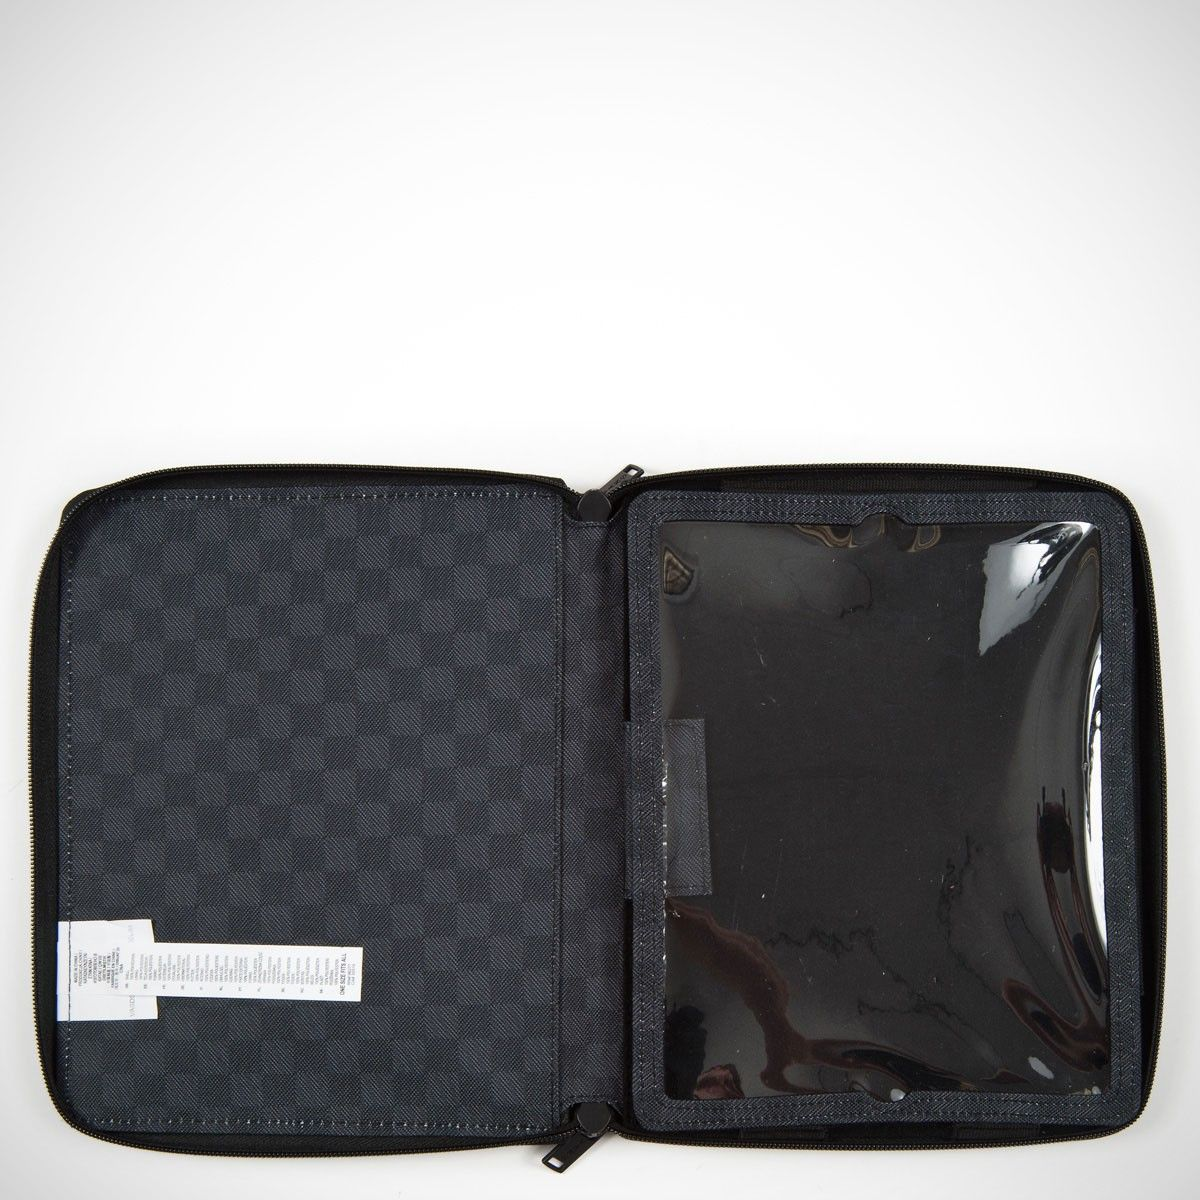 Vans Ipad Case - Black Checks  - No Comply Skate Shop